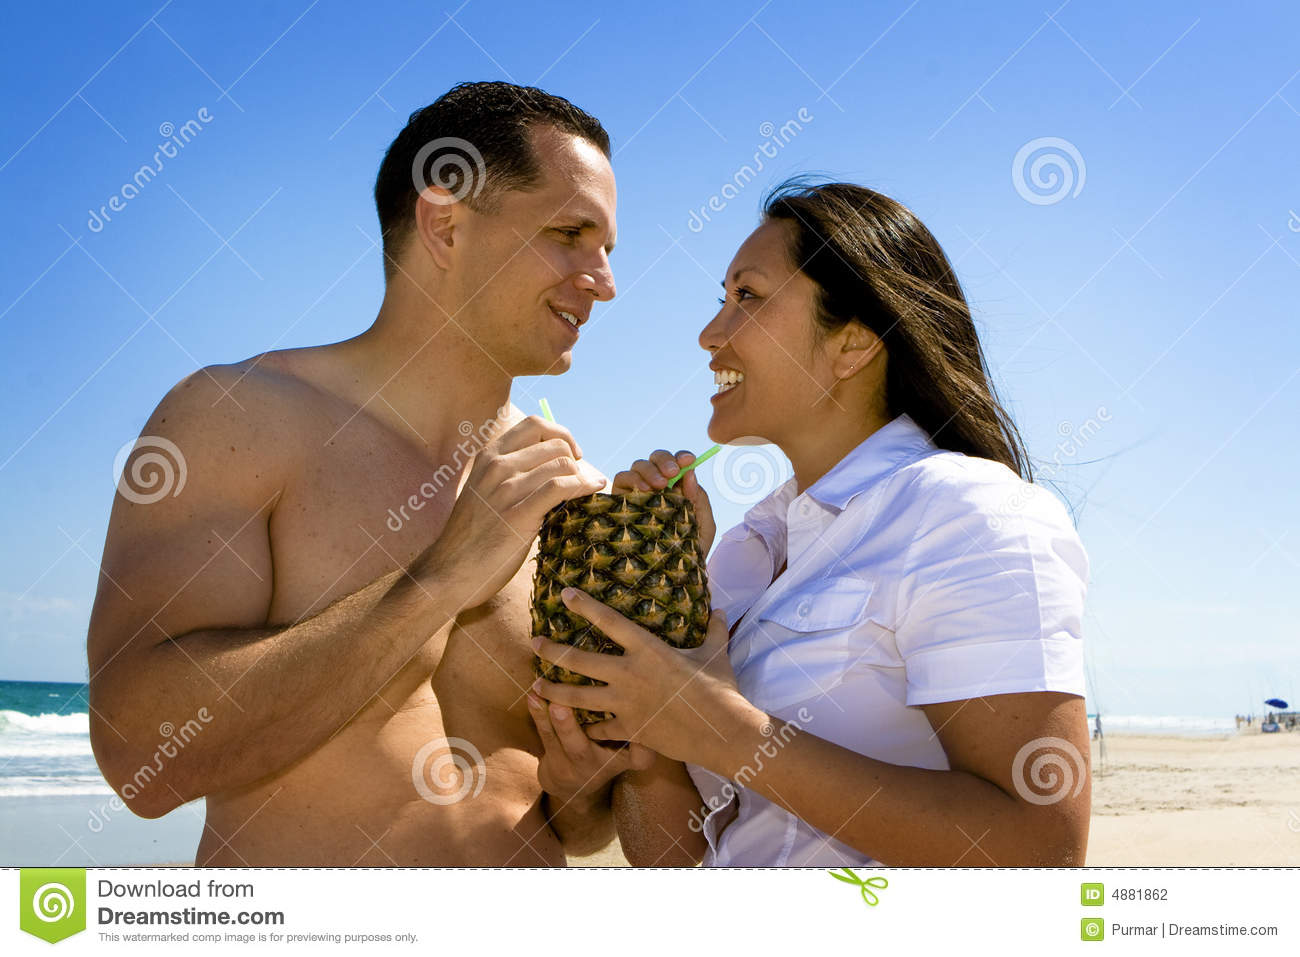 Tropical vacation stock photography image 4881862 for Tropical vacations for couples